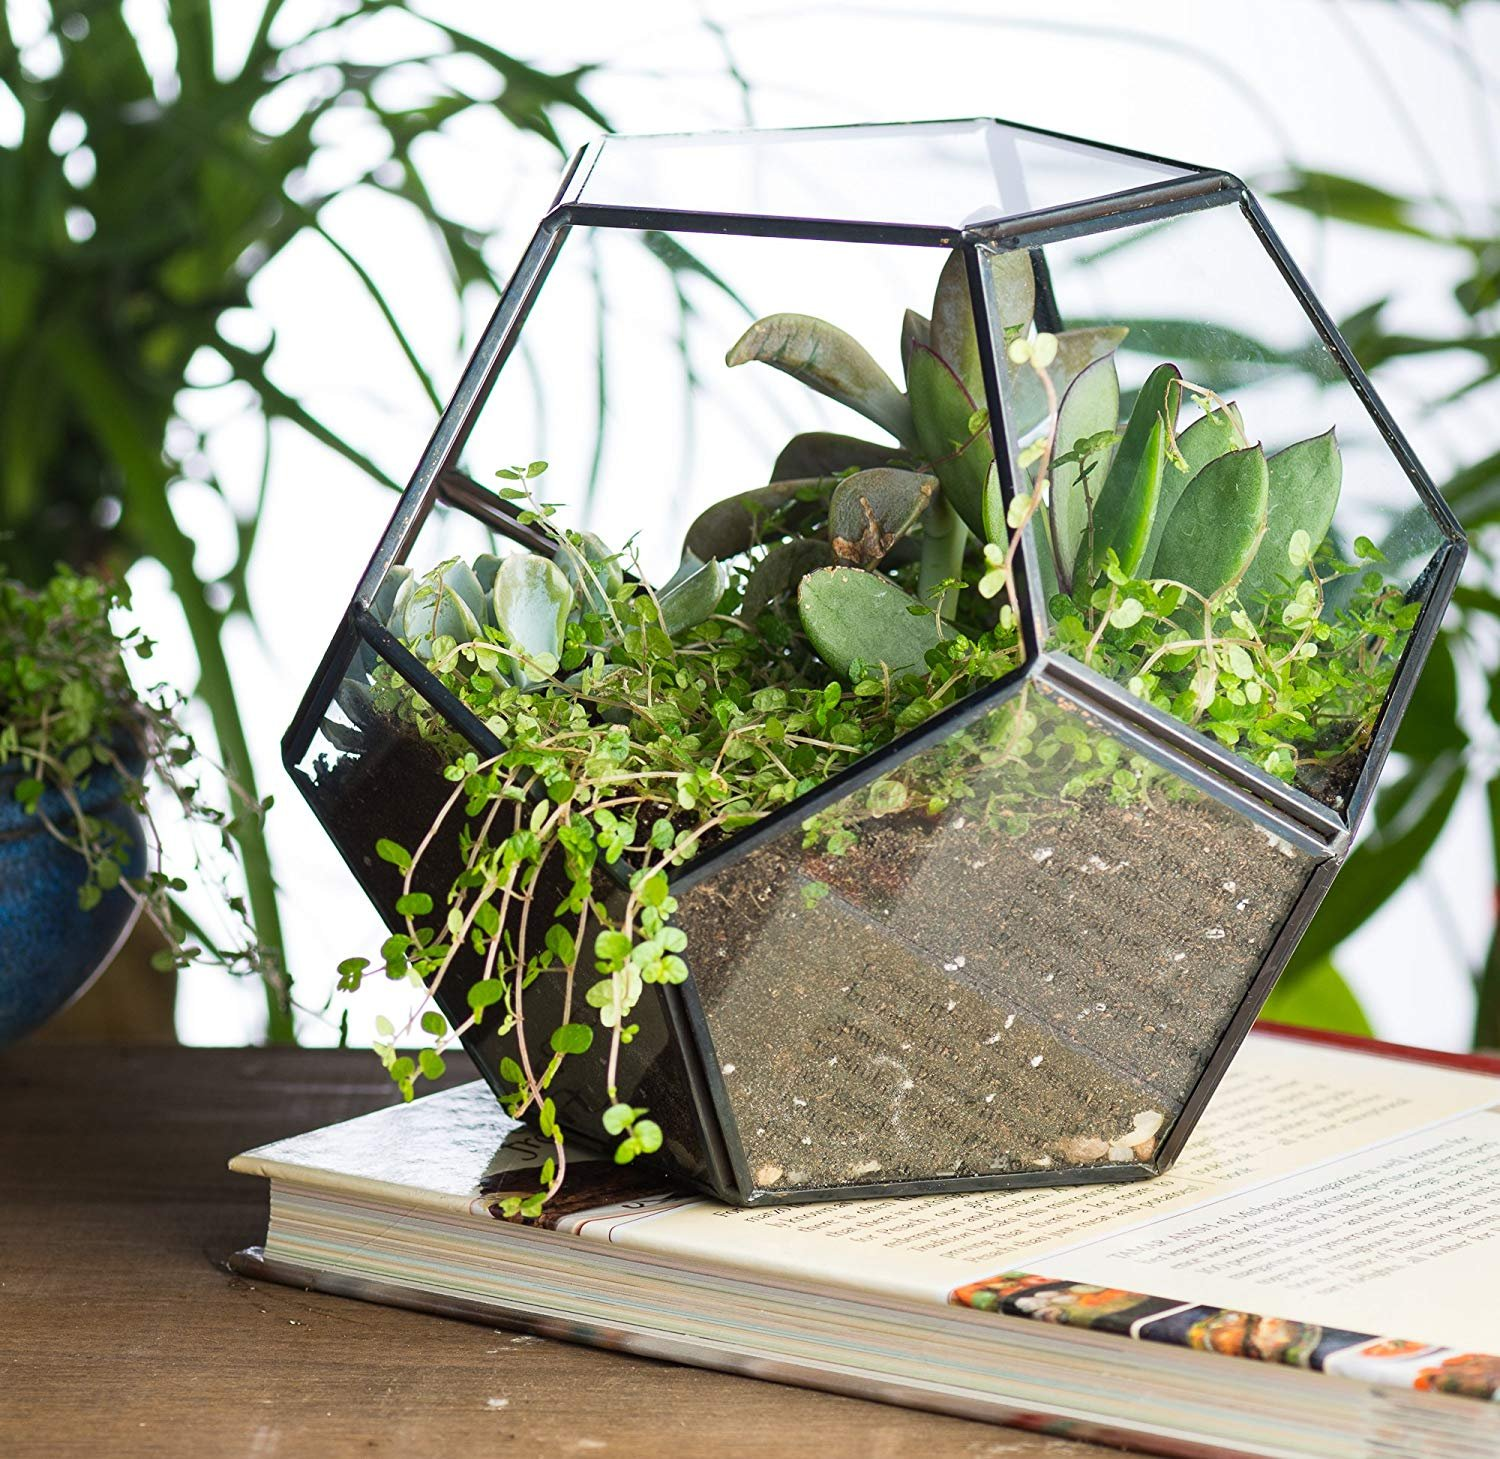 Geometric Terrarium,Elitlife Modern Tabletop Indoor Plant DIY Glass Prism Terrarium Tea Light Candle Holder Display Box for Succulent Fern Moss Air Plants Miniature Fairy Garden Gift for Mother's Day